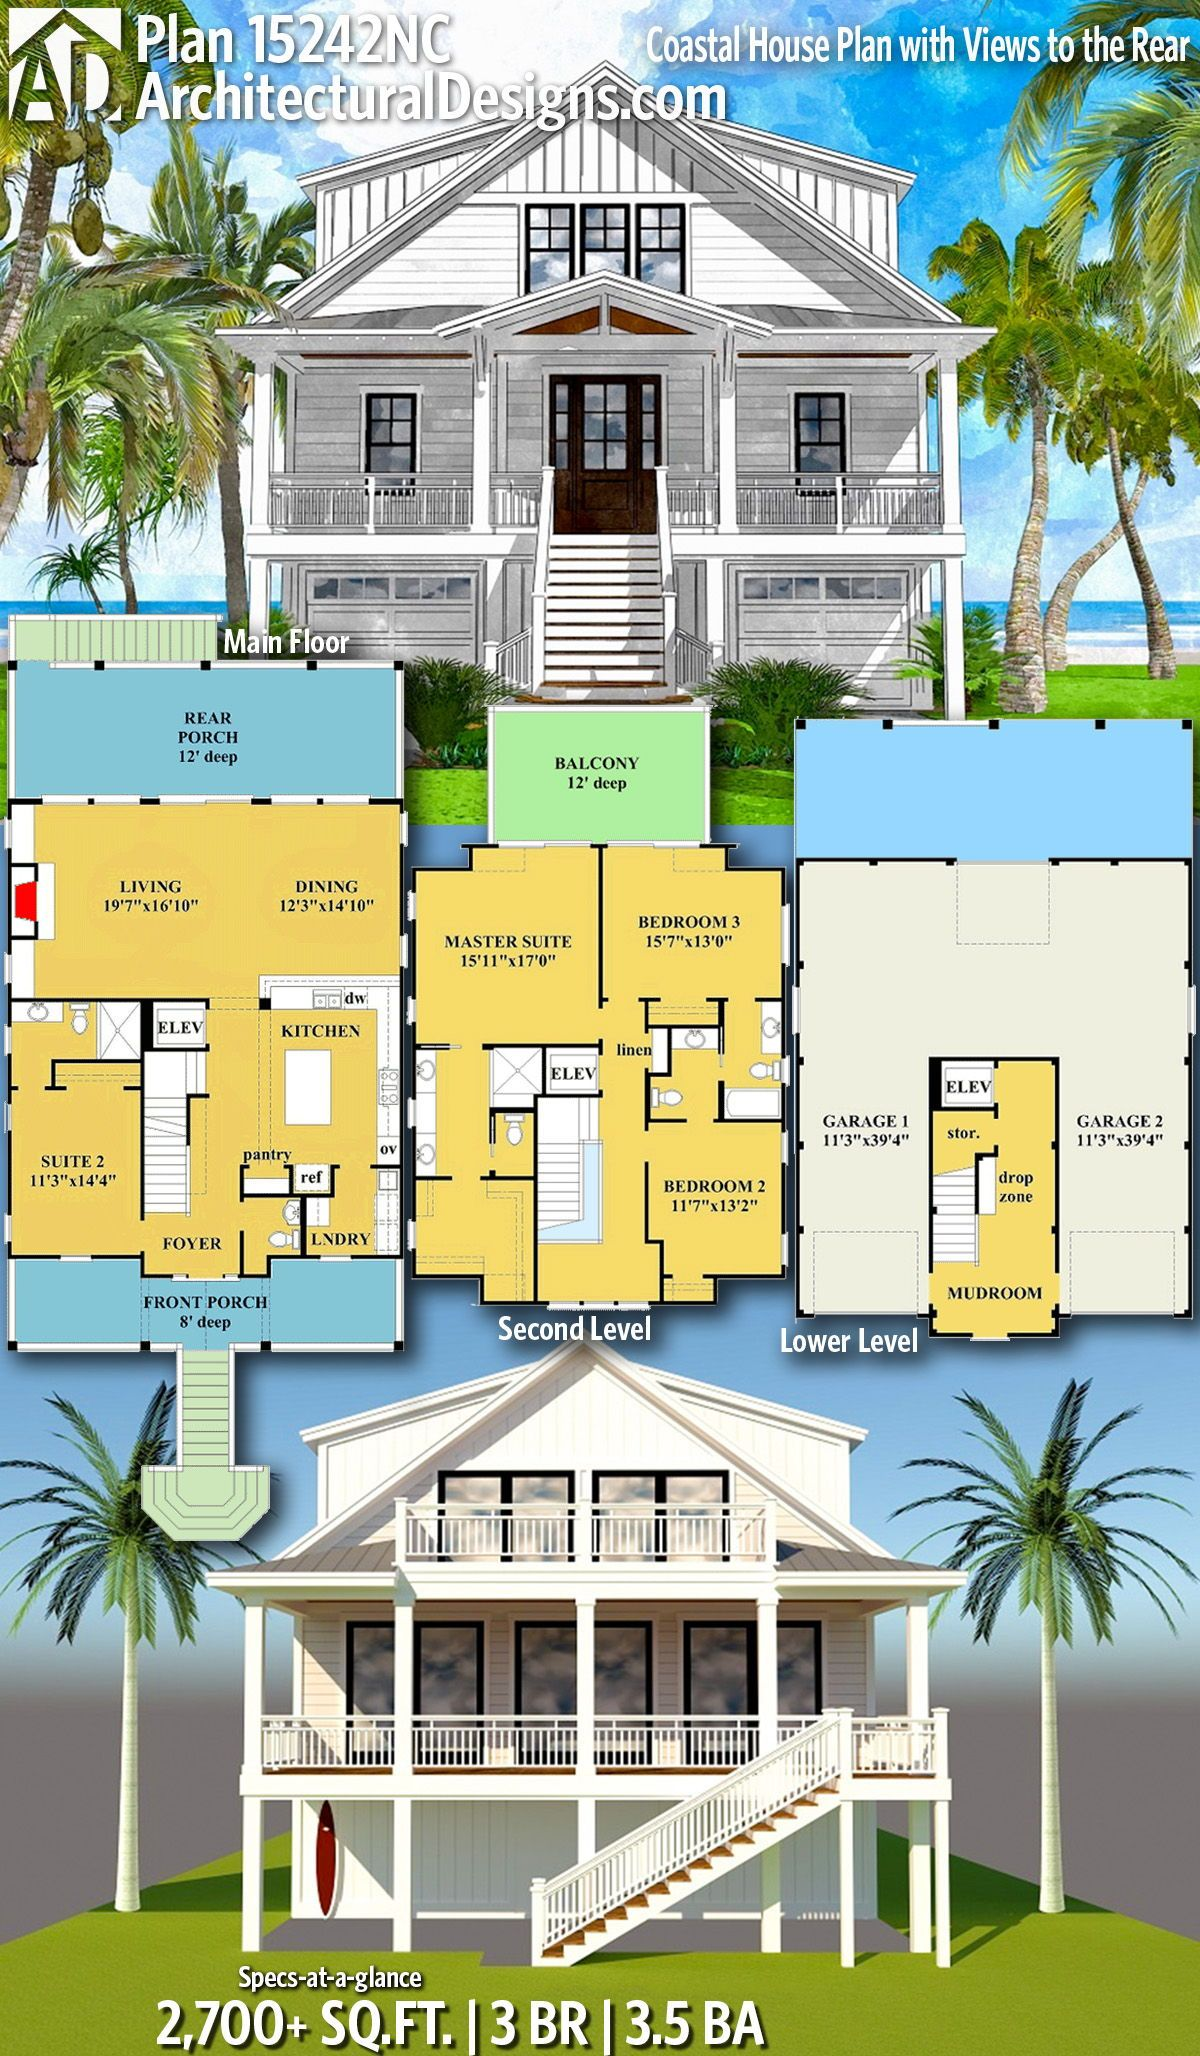 Plan 15242nc Coastal House Plan With Views To The Rear In 2020 Beach House Floor Plans Coastal House Plans Beach Cottage House Plans